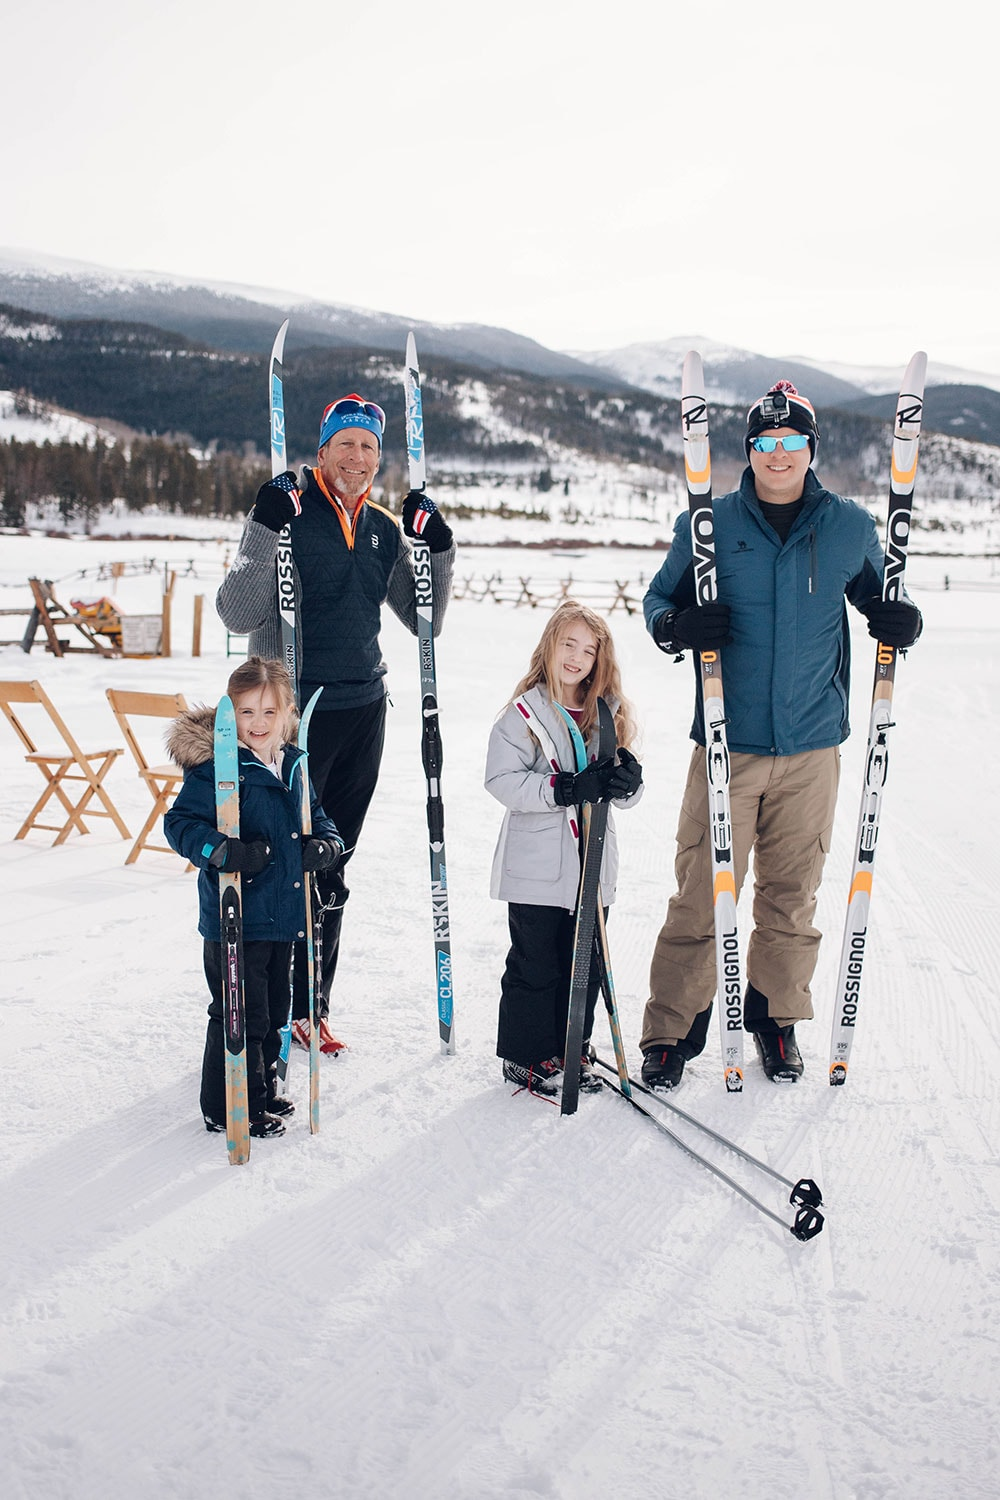 Houston blogger Meg O. shares her family trip to Winter Park Colorado - Make sure to Cross-Country ski at Devil's Thumb Ranch - the #1 cross-country ski resort in North America